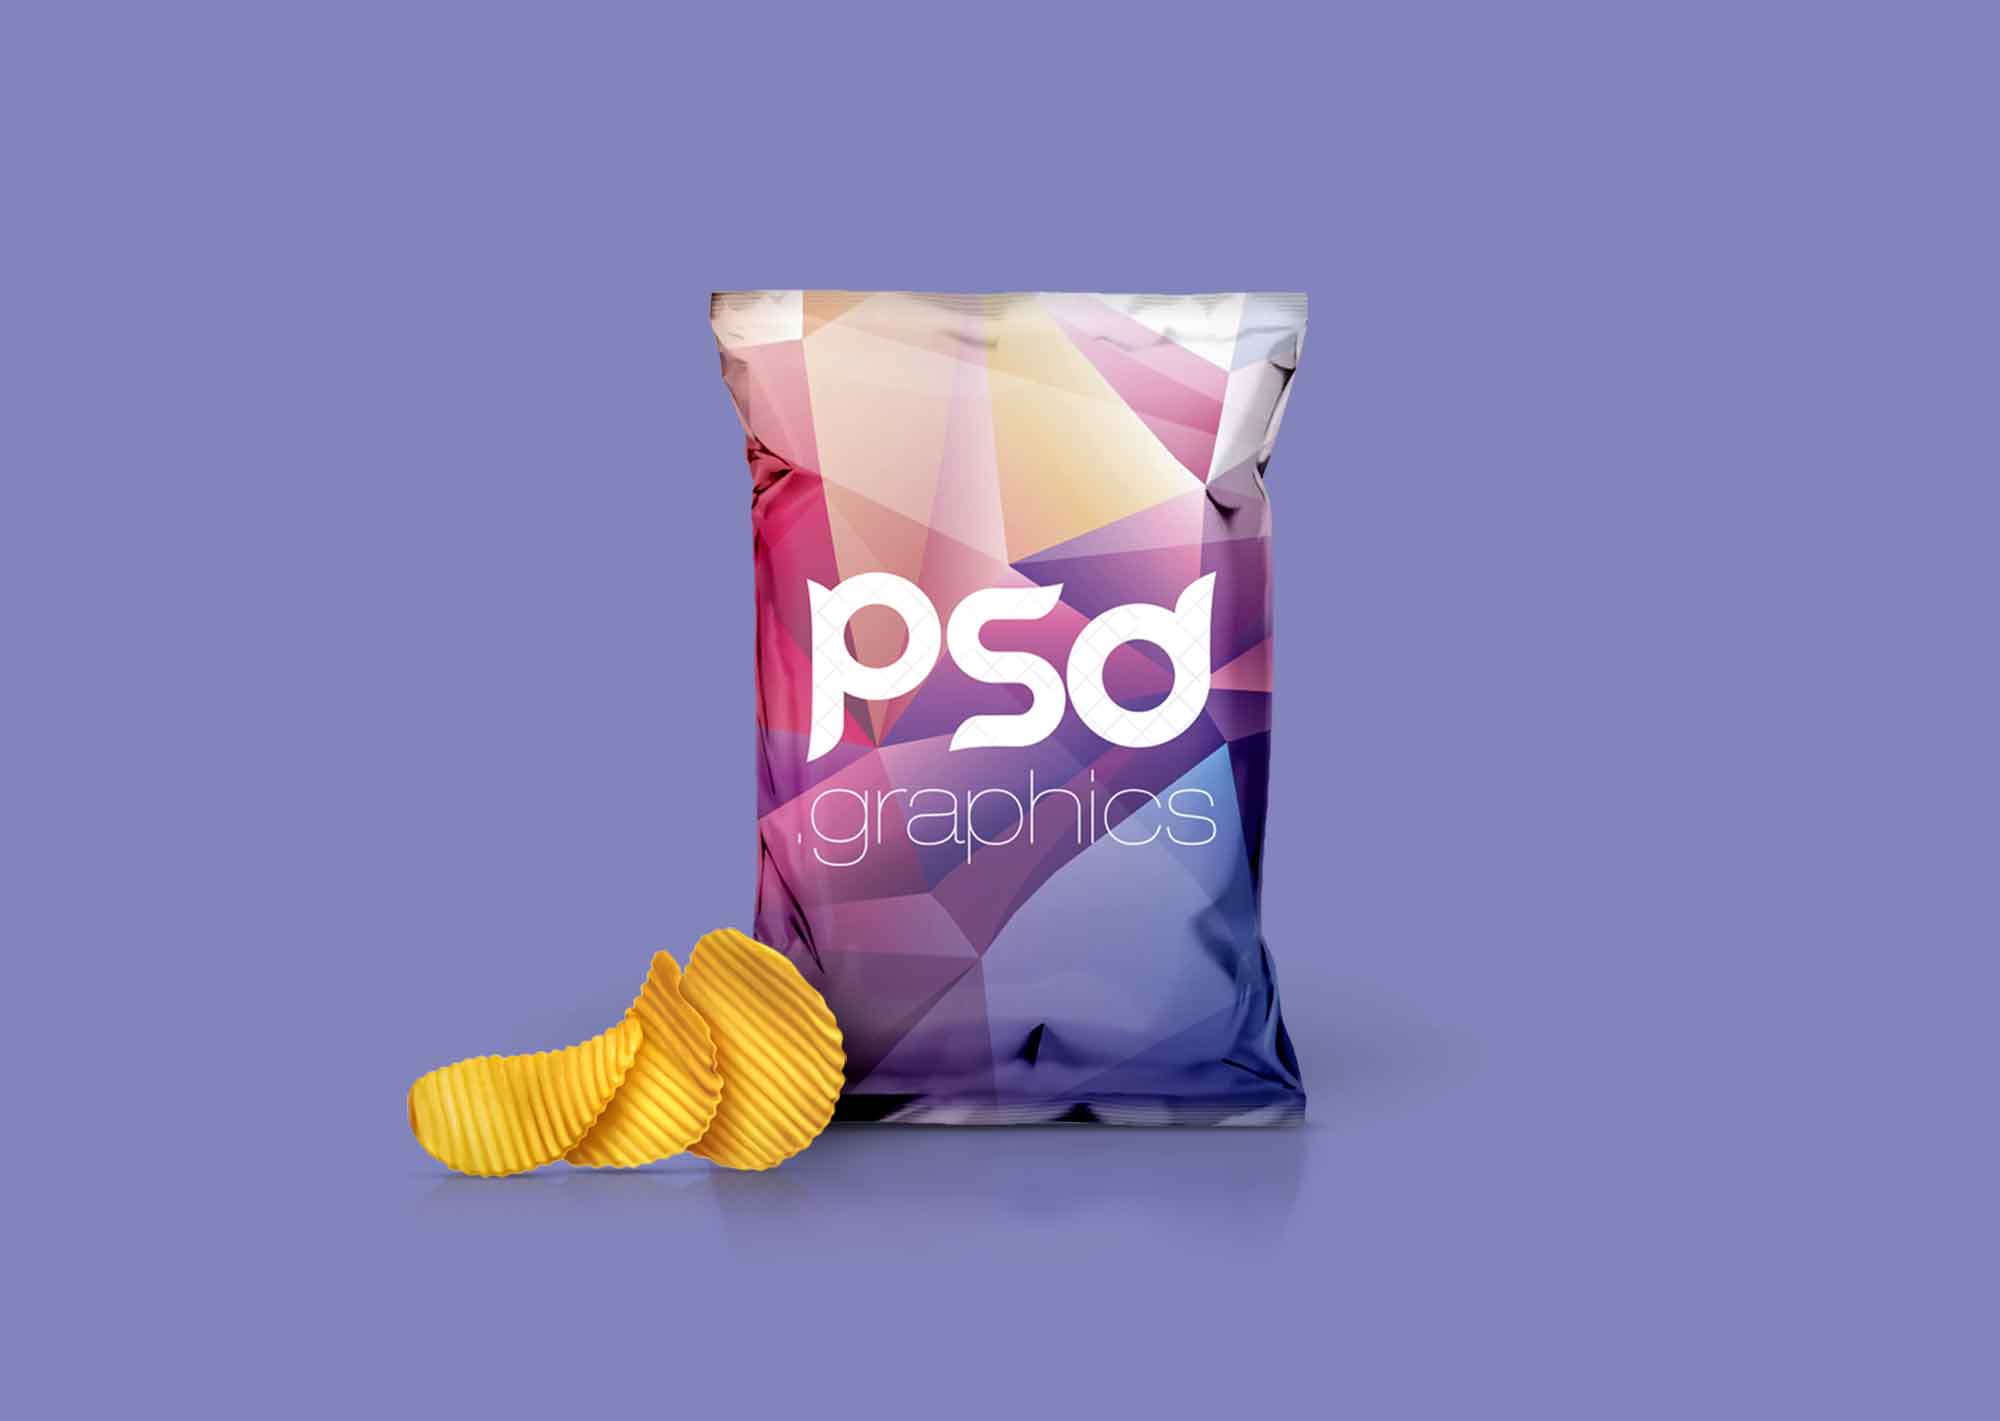 A photorealistic premium quality aluminium foil pouch packaging mockup to showcase food packaging design. Free Foil Chips Bag Packaging Mockup Psd